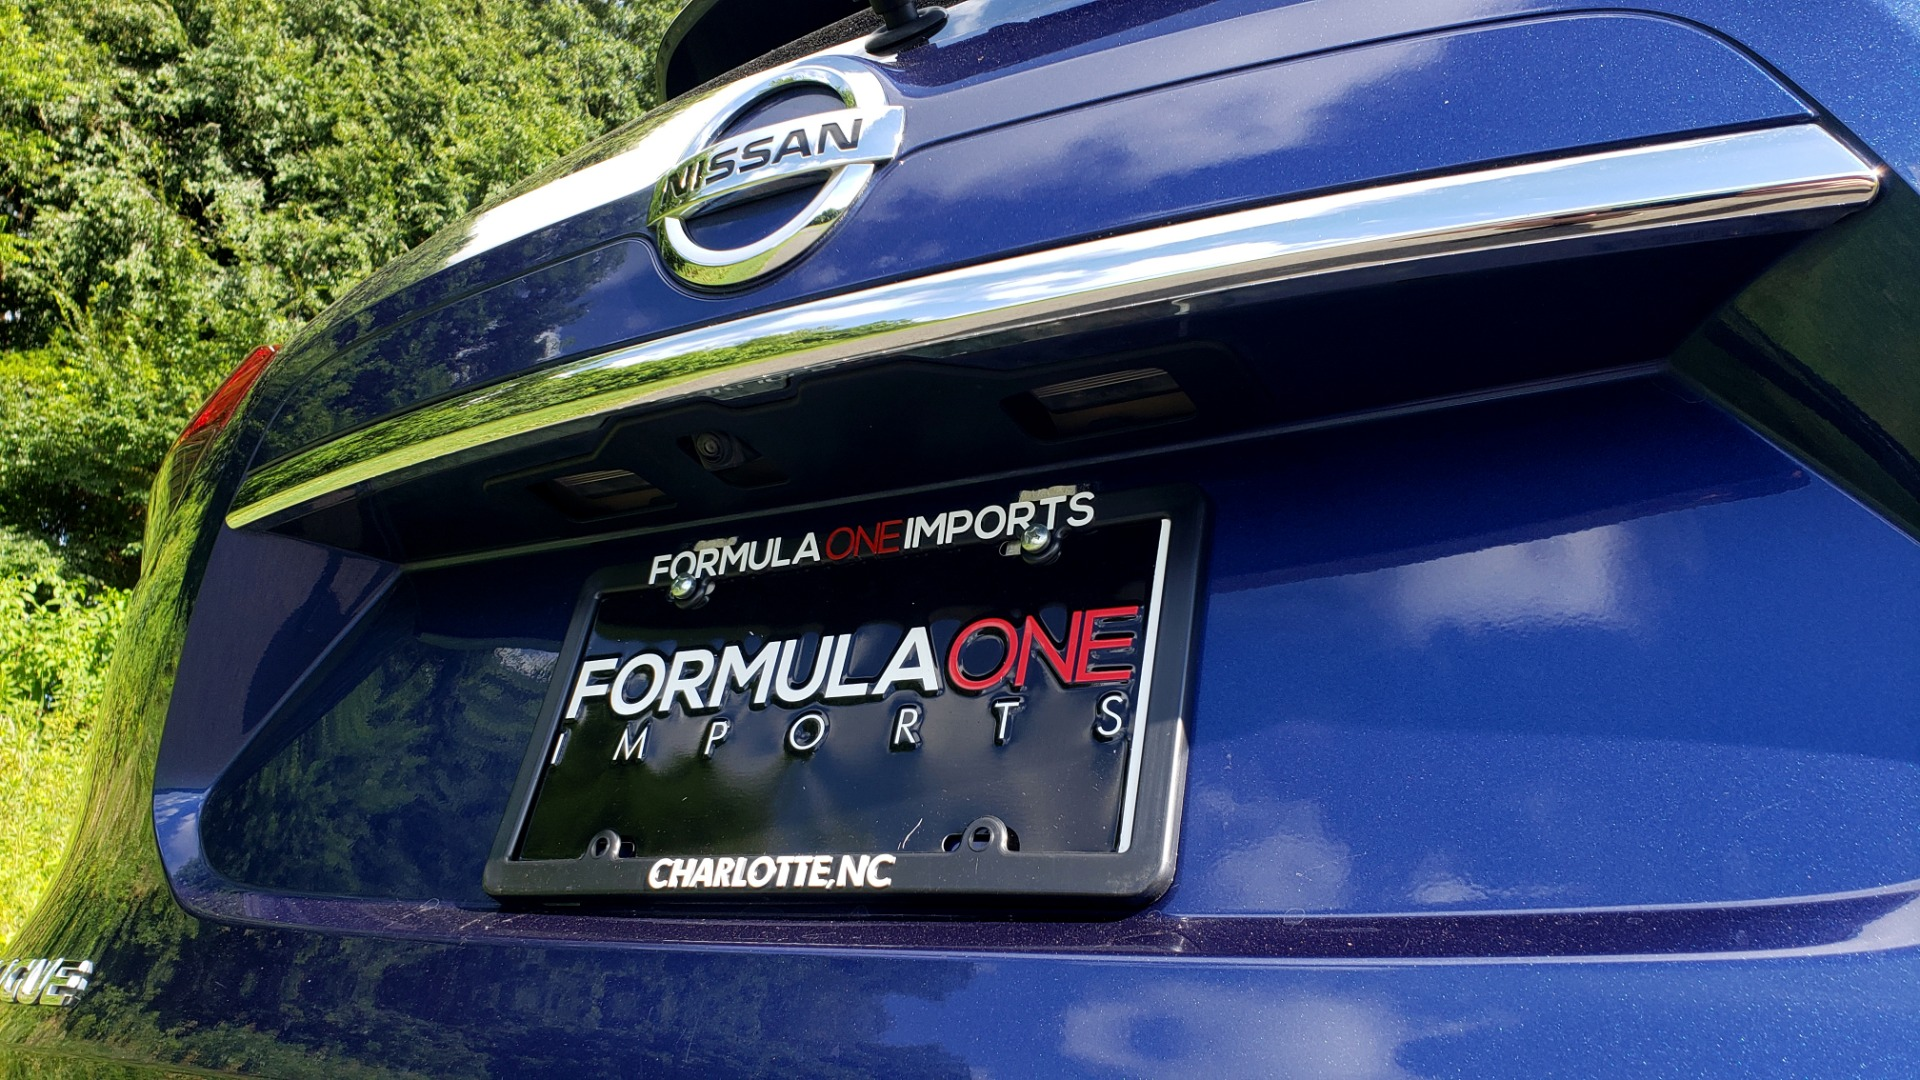 Used 2018 Nissan ROGUE SV / FWD / DUAL-ZONE CLIMATE / HEATED SEATS / REARVIEW for sale Sold at Formula Imports in Charlotte NC 28227 28